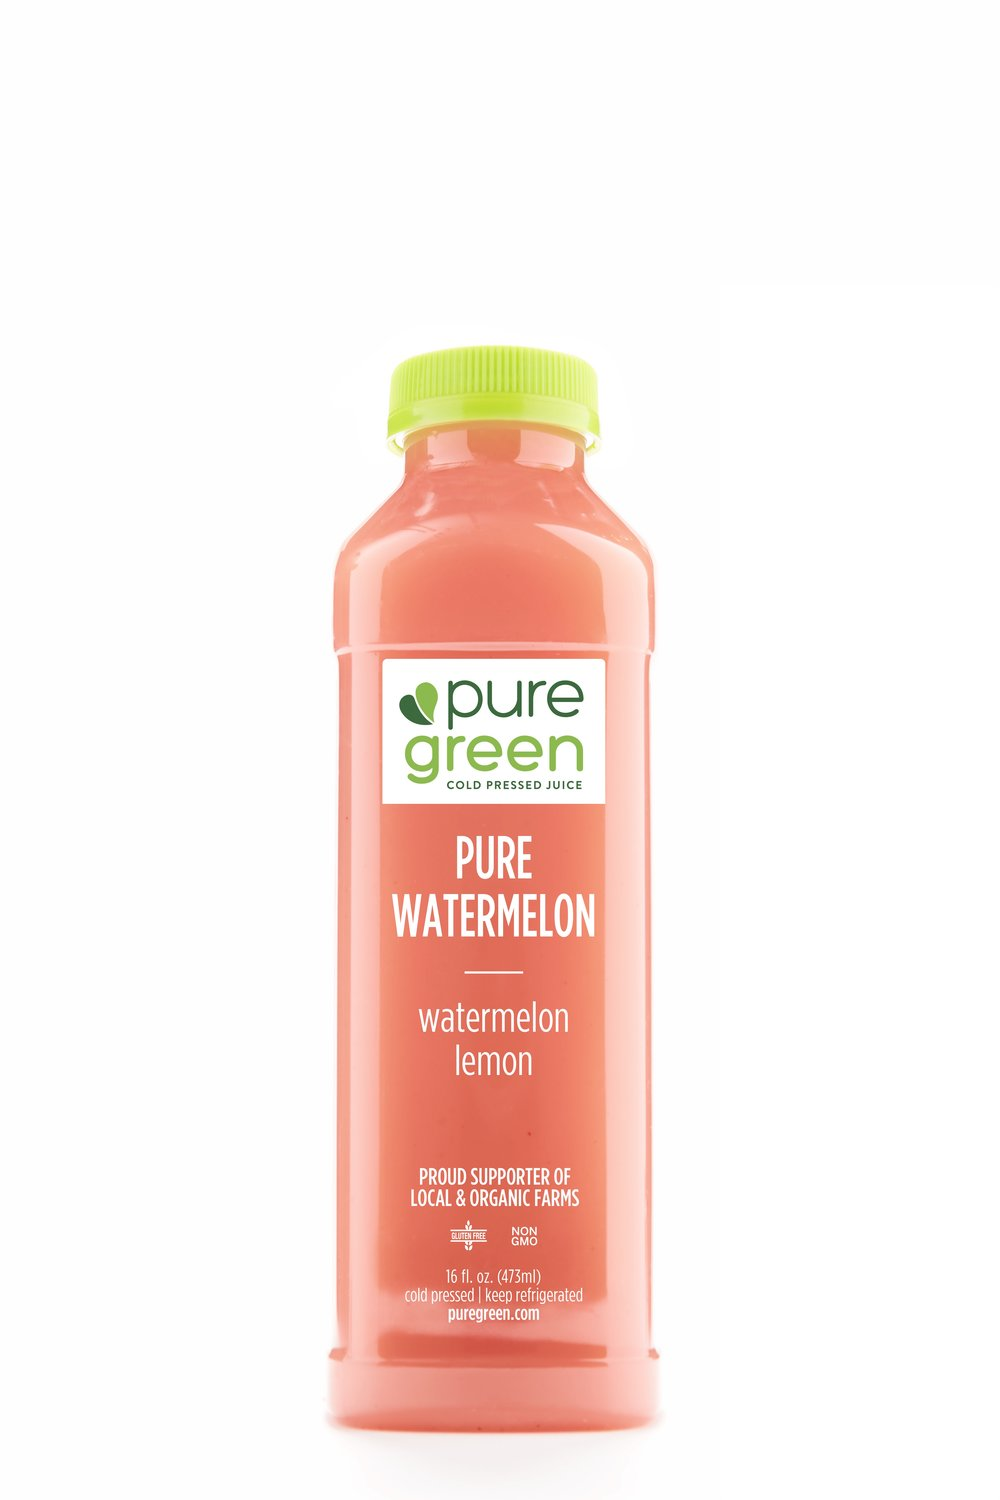 Pure+Watermelon+Cold+Pressed+Juice.jpg